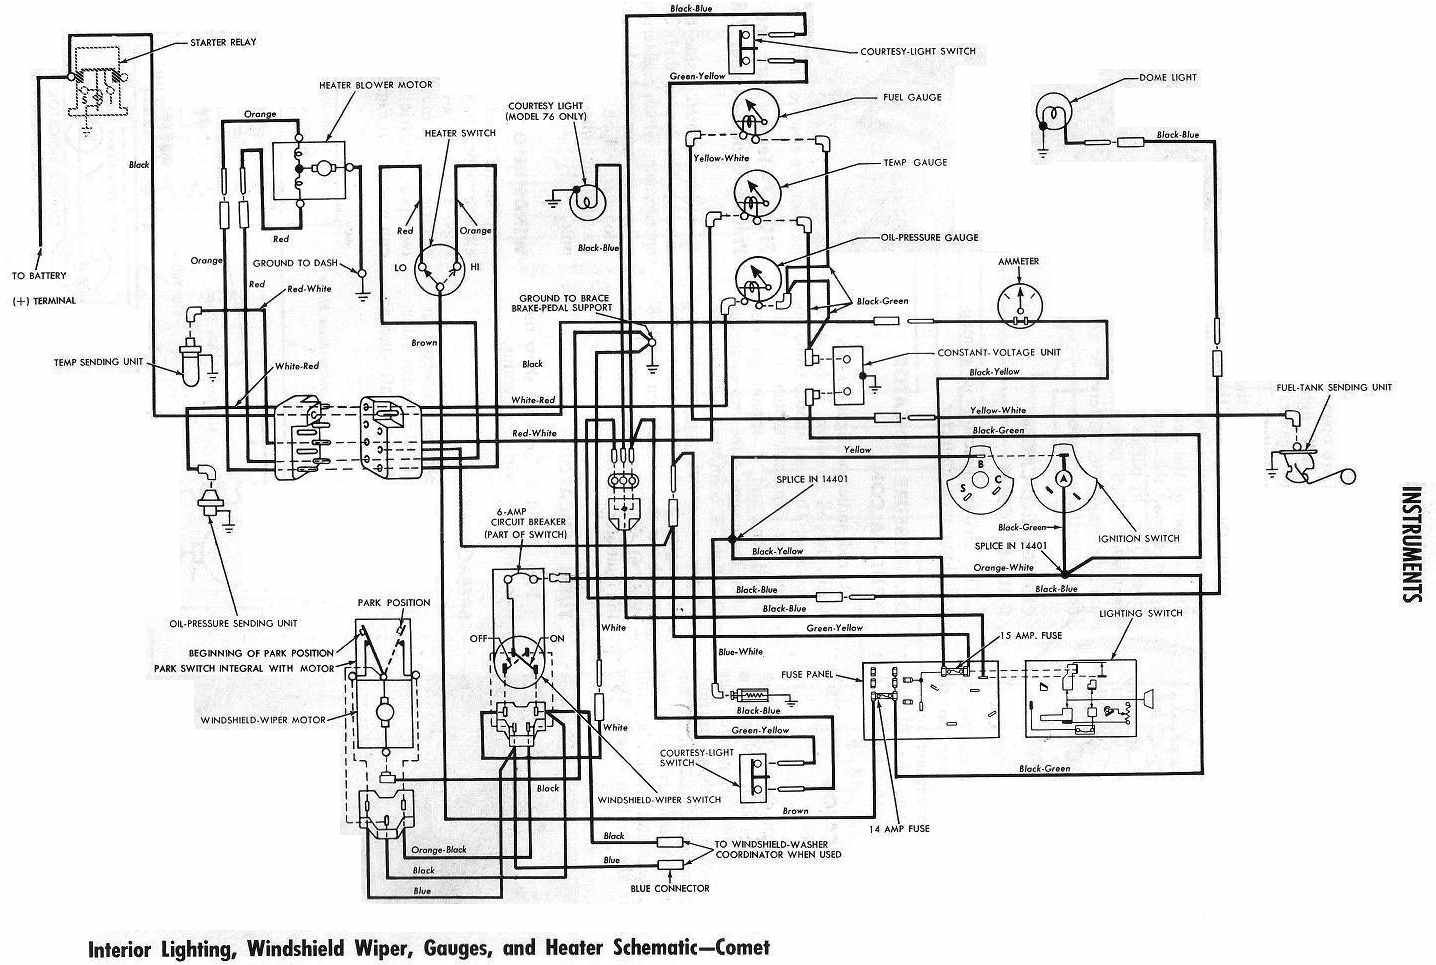 74 Mercury Comet Wiring Diagram FULL HD Version Wiring Diagram - ER-DIAGRAM .ROMANIATV.ITDiagram Database And Images - romaniatv.it